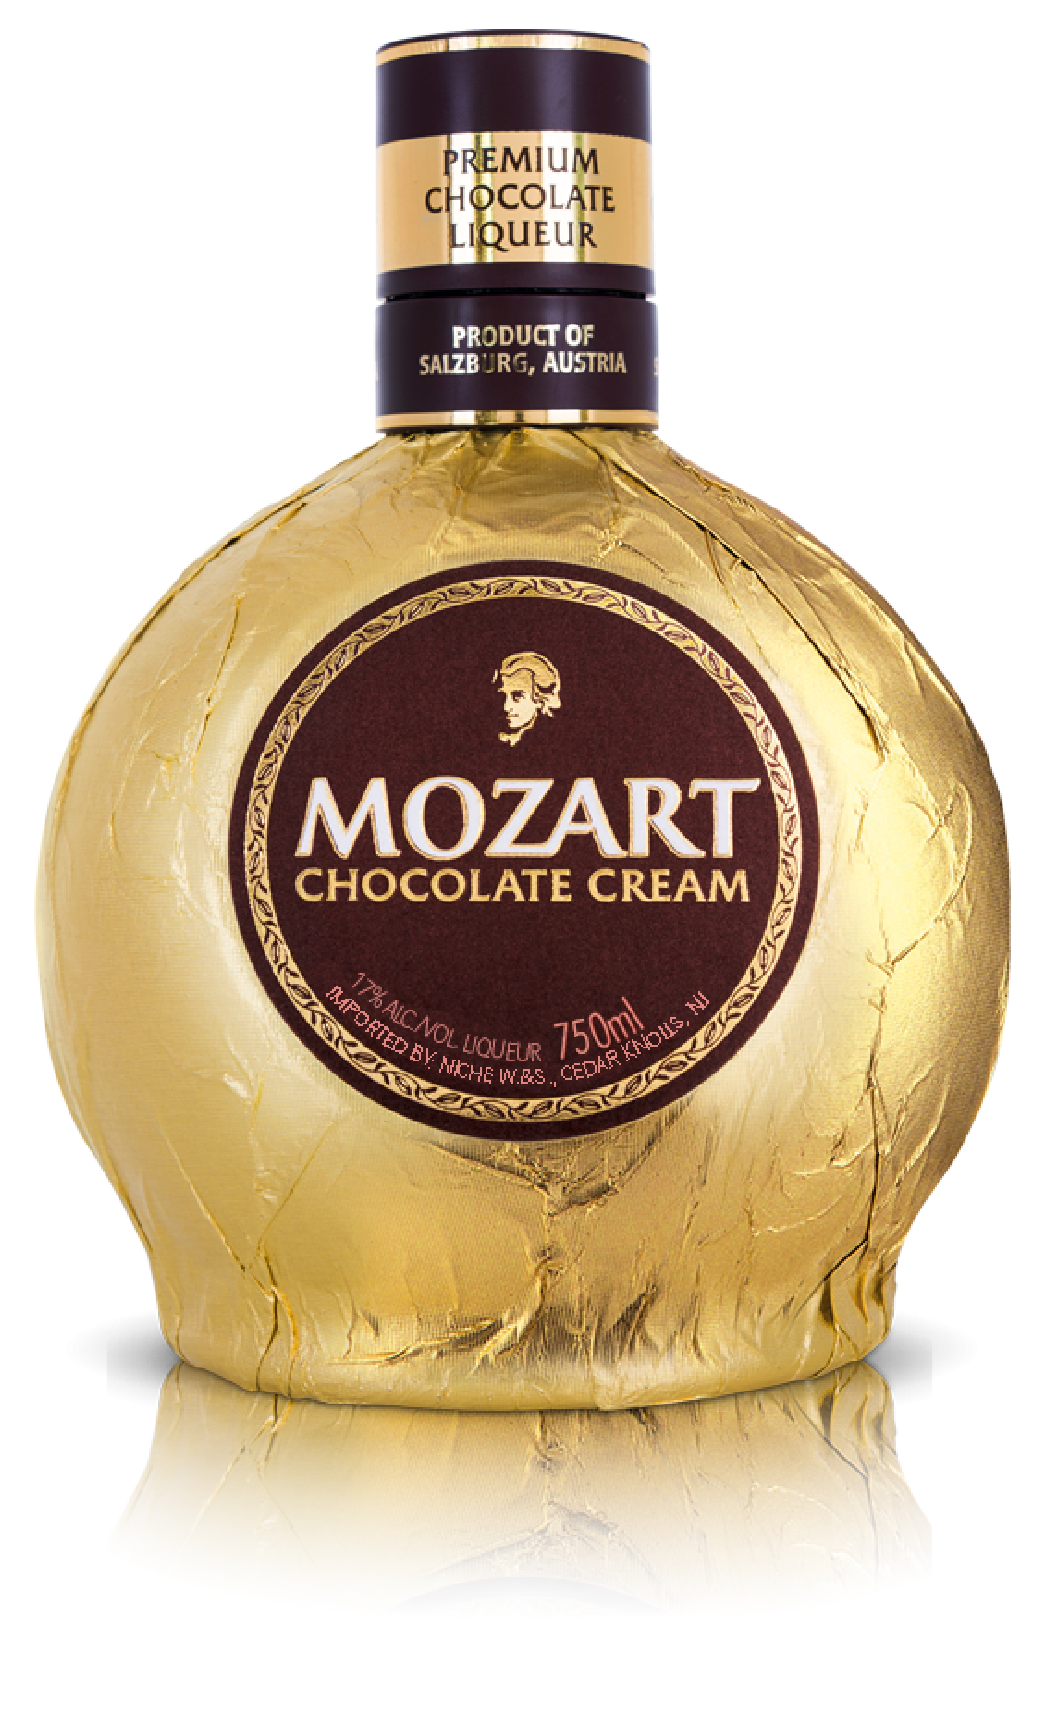 mozart_bottle_reflection_mesh-01